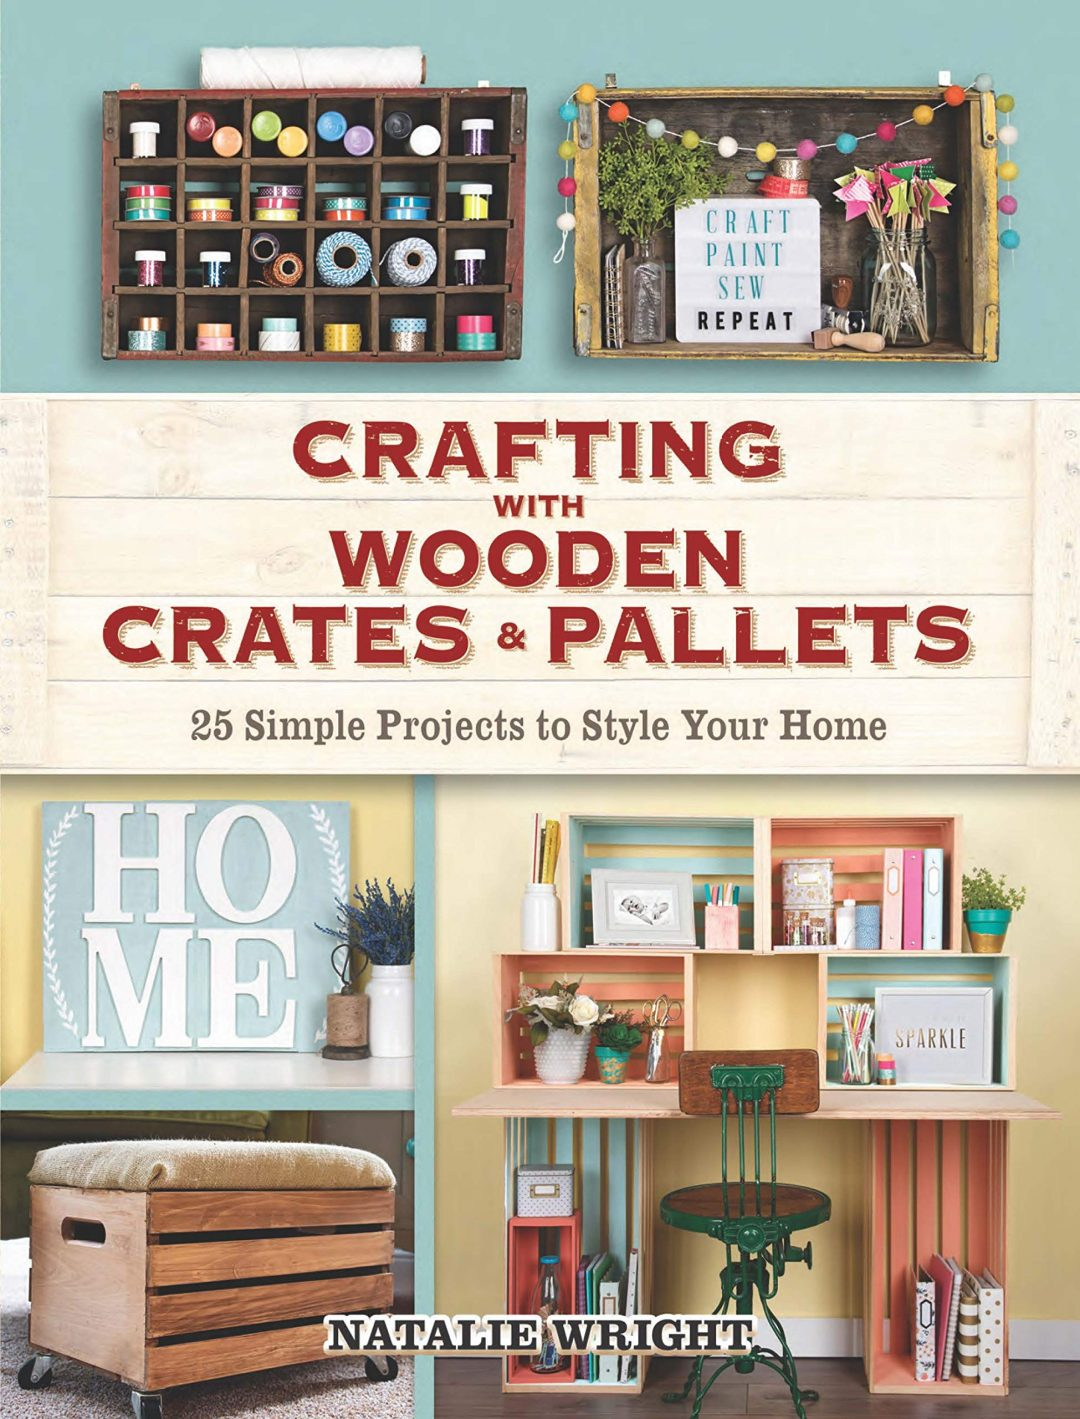 New Crafting Books!